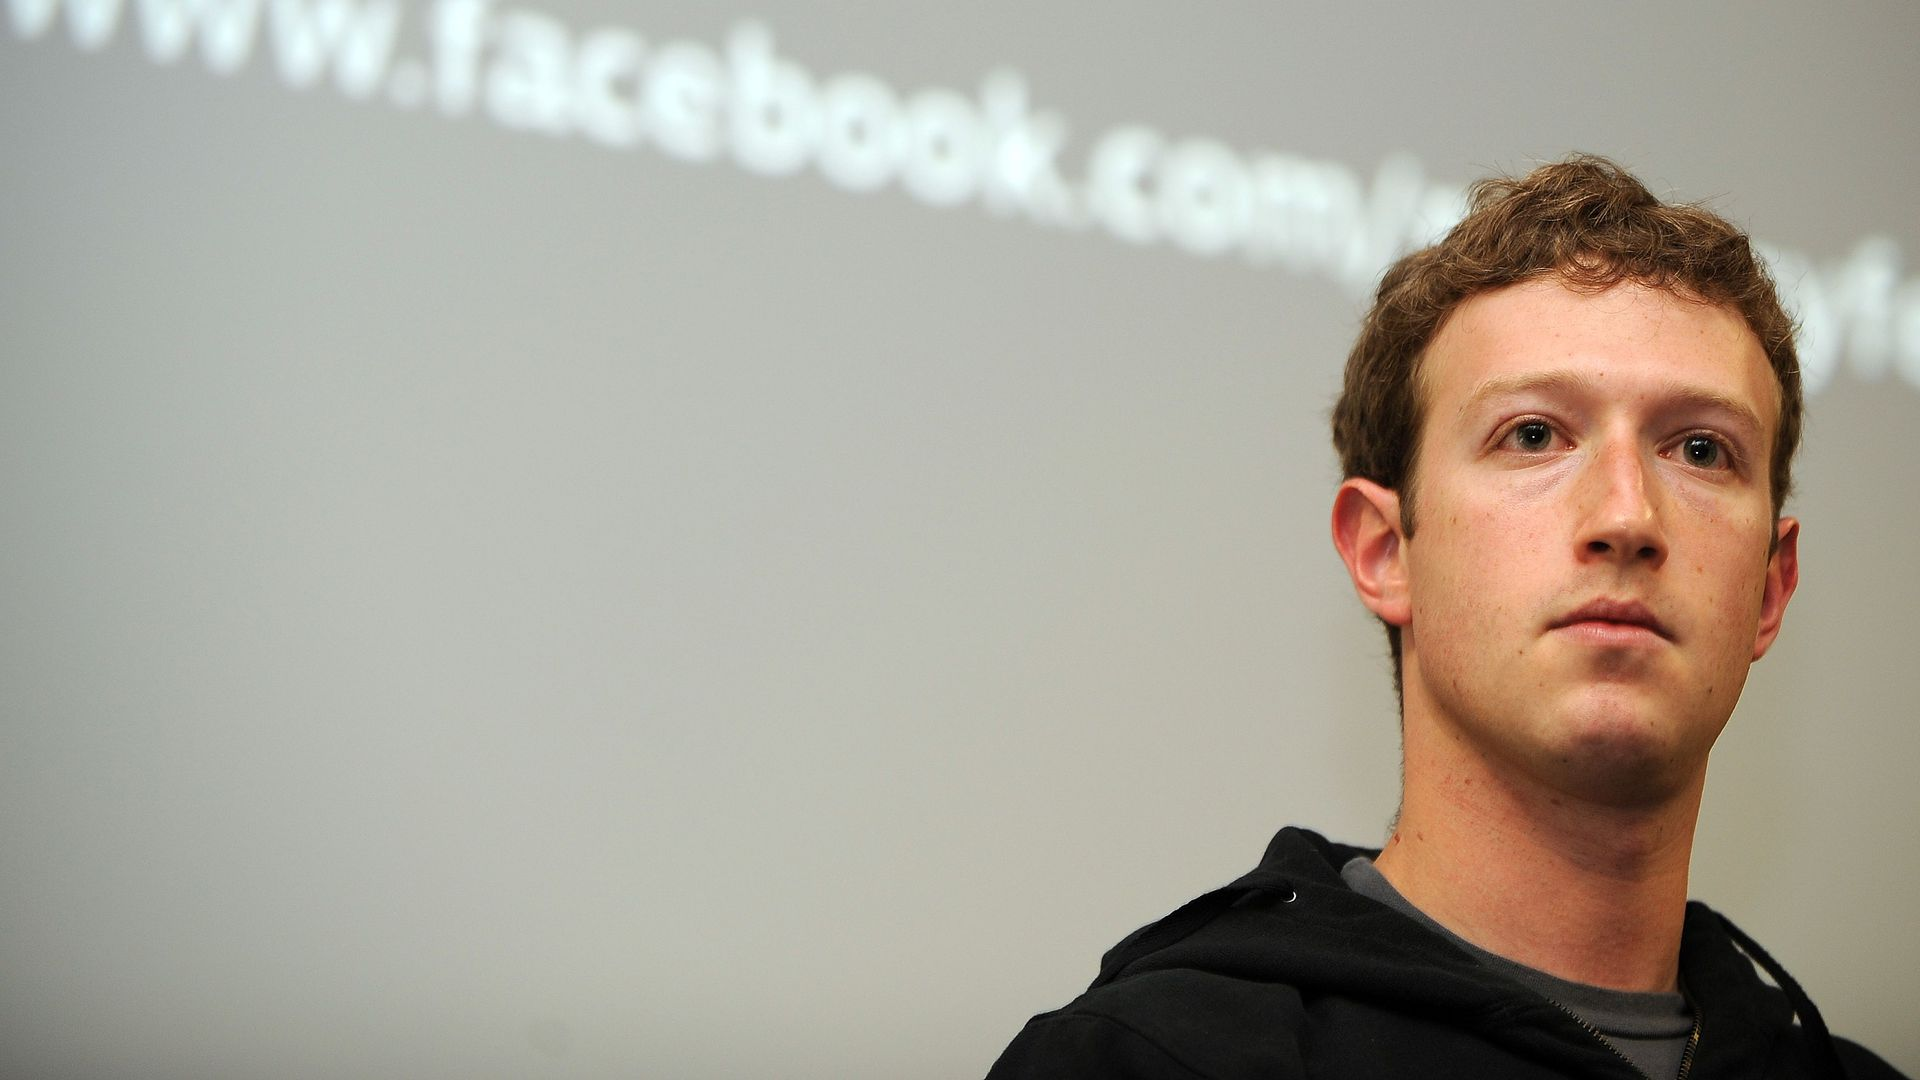 Mark Zuckerberg speaks during a press conference at the Facebook headquarters in Palo Alto, California